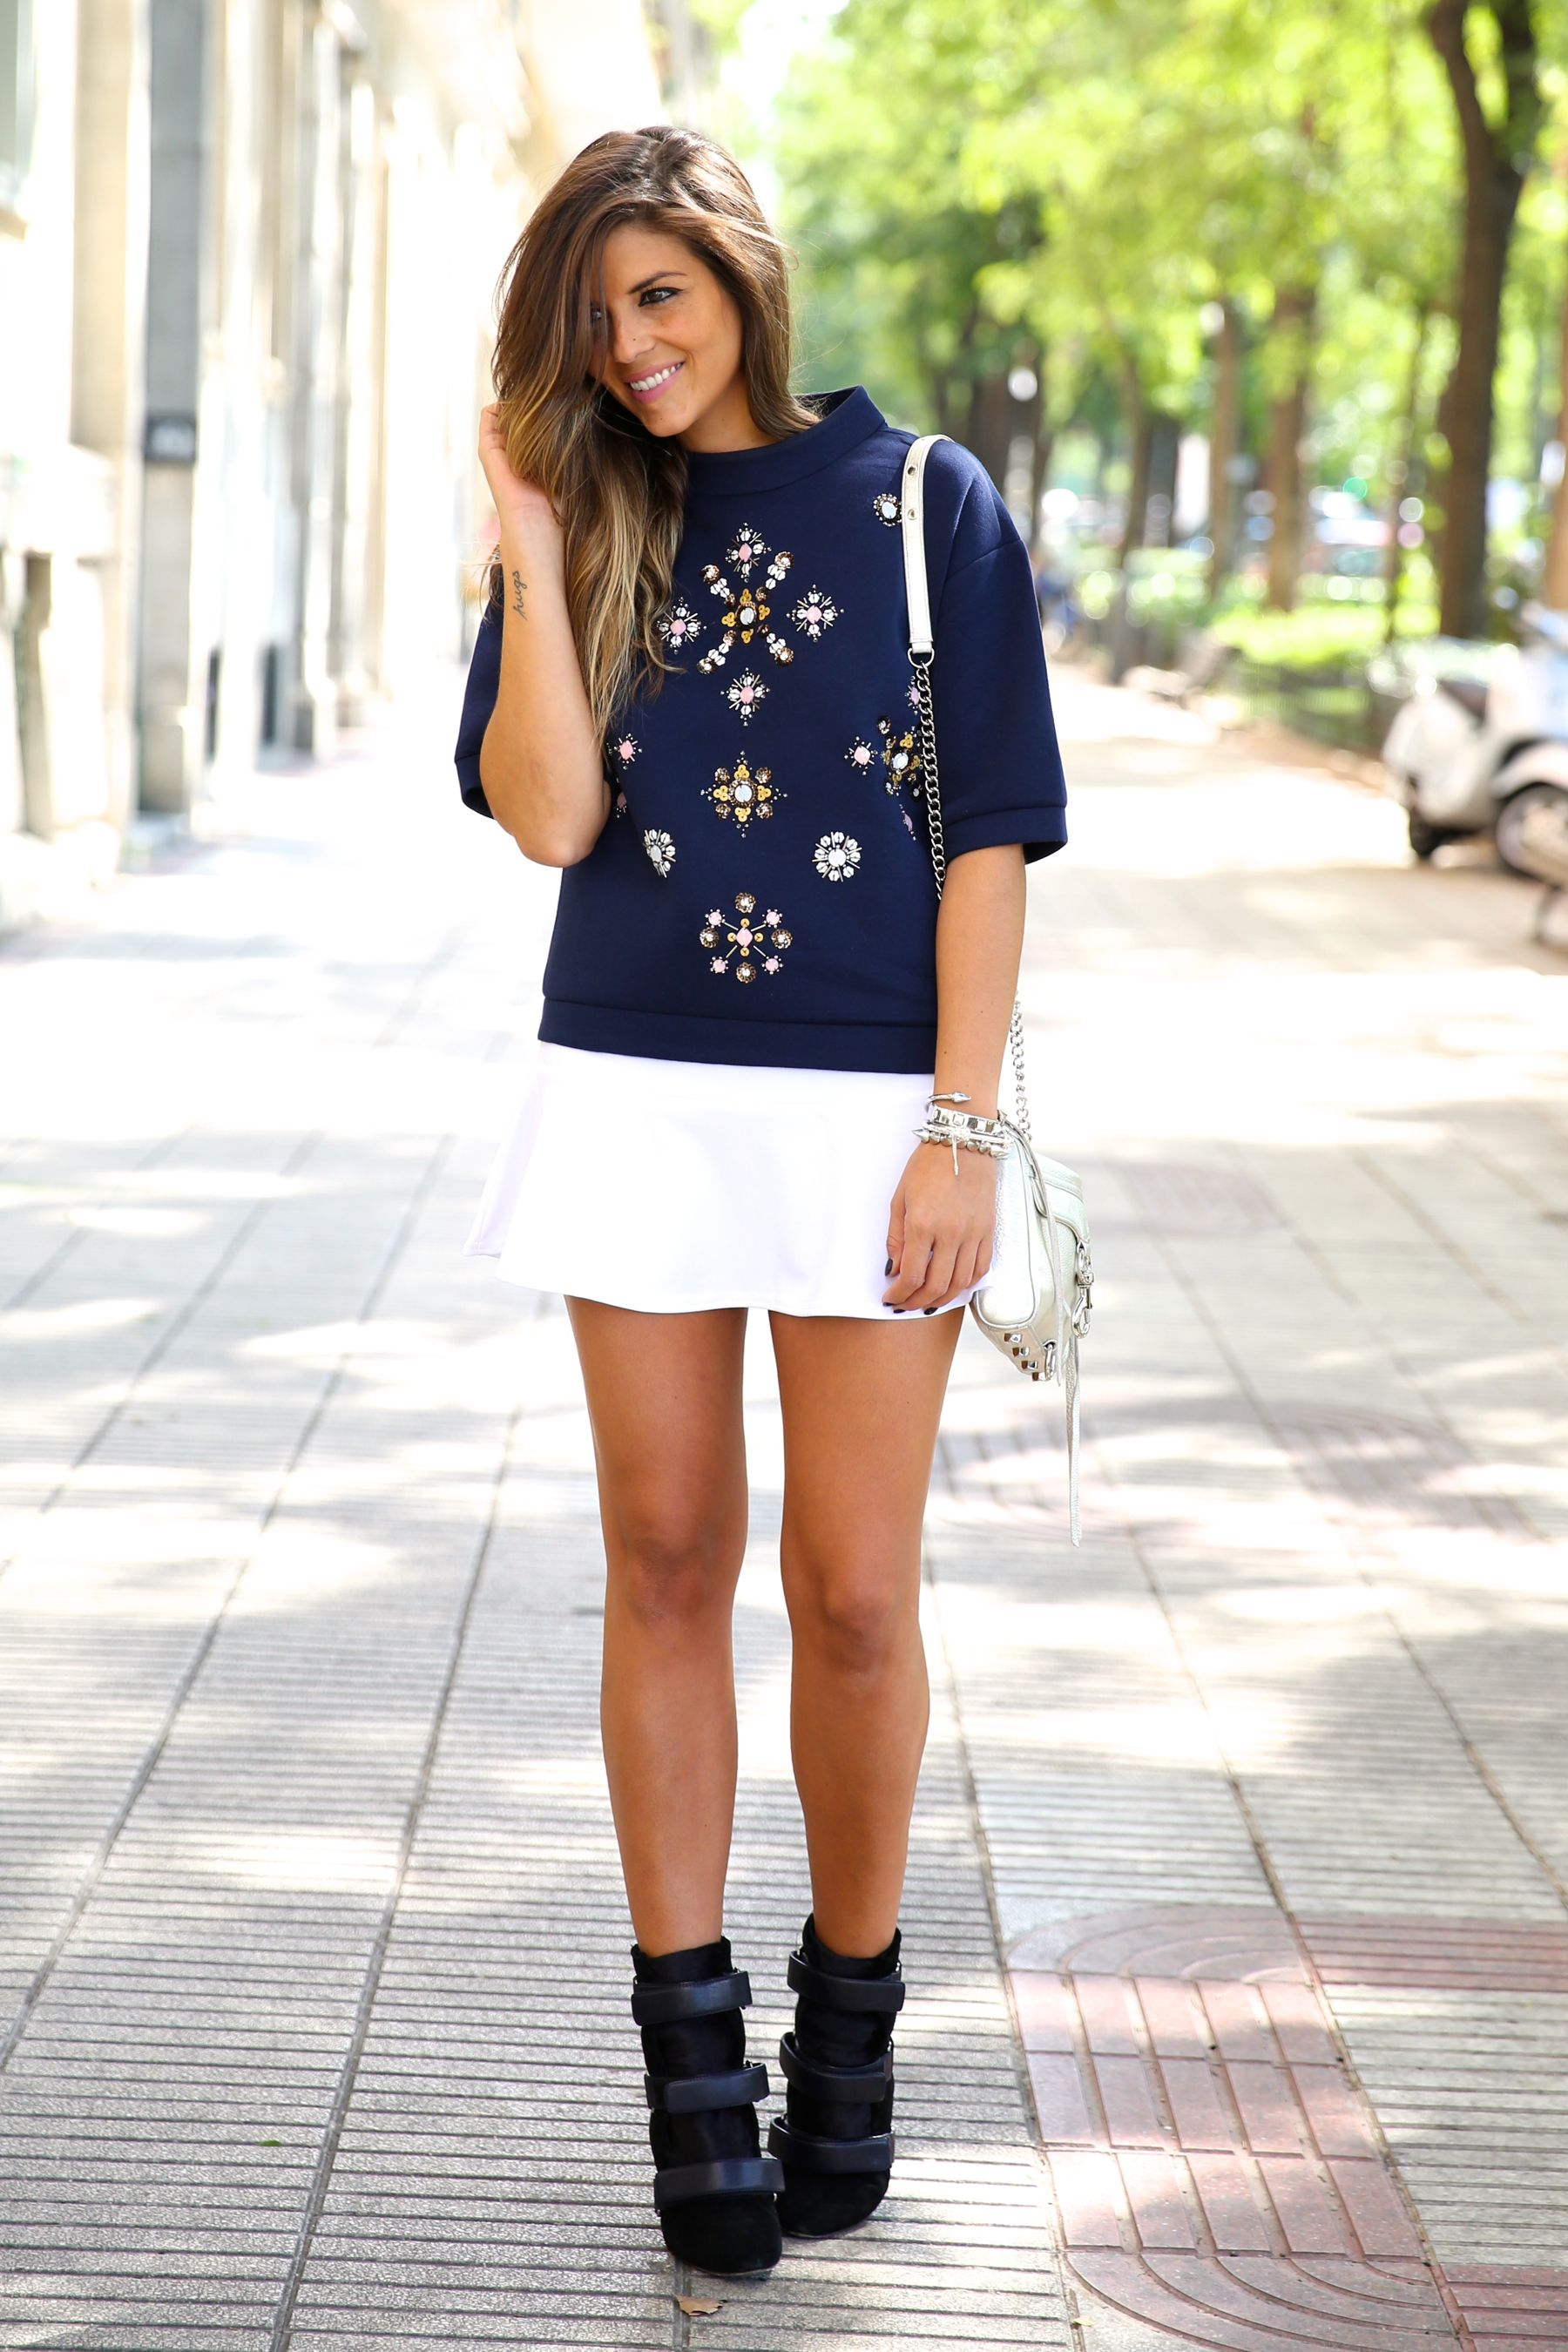 trendy_taste-look-outfit-street_style-ootd-blog-blogger-fashion_spain-moda_españa-sport_chic-isabel_marant-botines-booties-sudadera-pedrería-sweater-falda-skirt-blue-azul-trend-tendencia-bolso_plateado-silver-bag-9